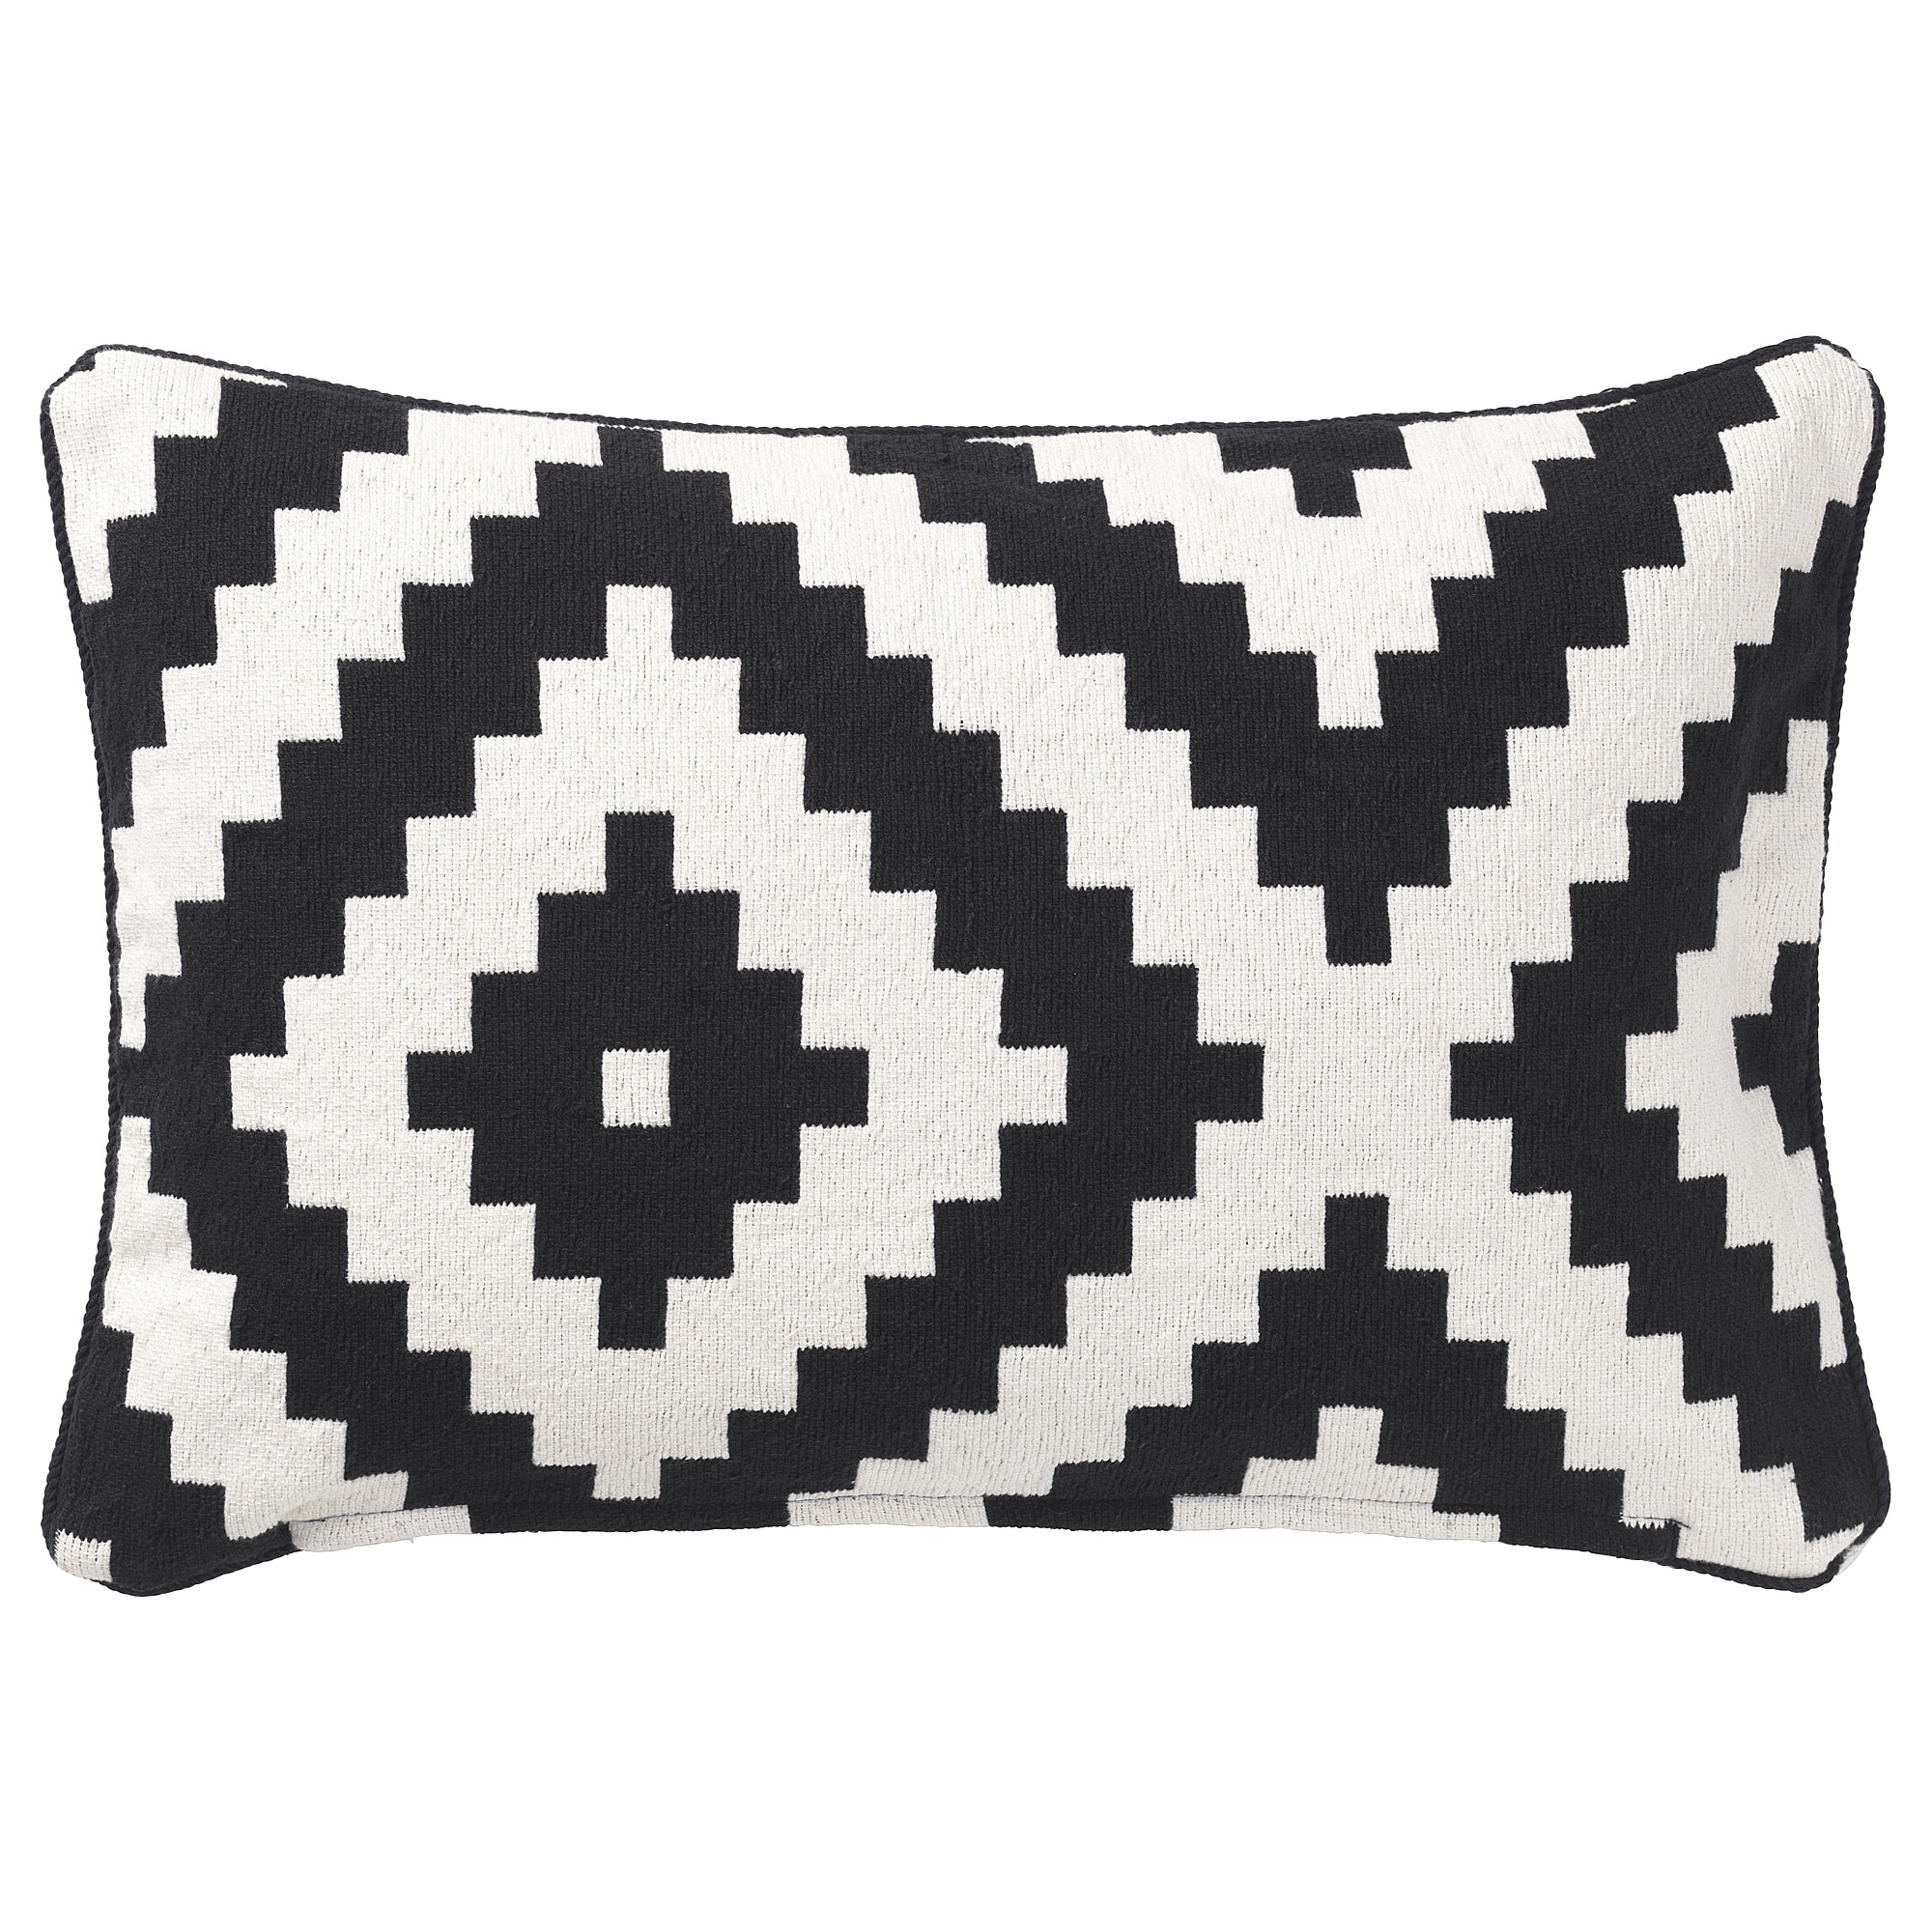 Ikea Us Furniture And Home Furnishings Ikea Pillows Cushion Cover Black Accent Pillow